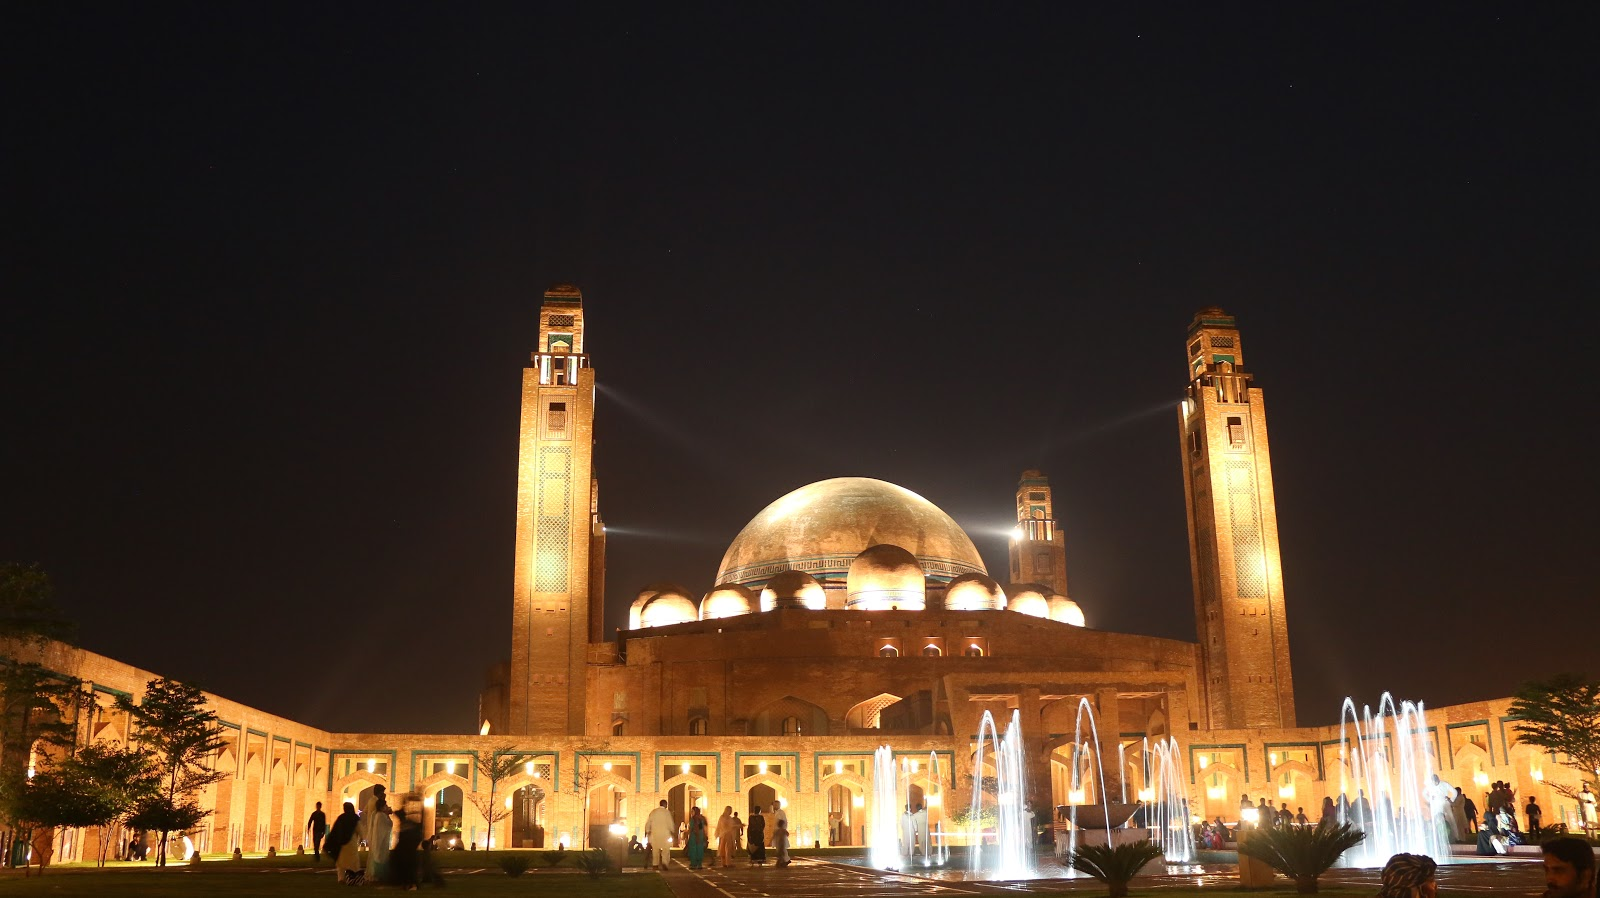 Night view of the Grand Mosque